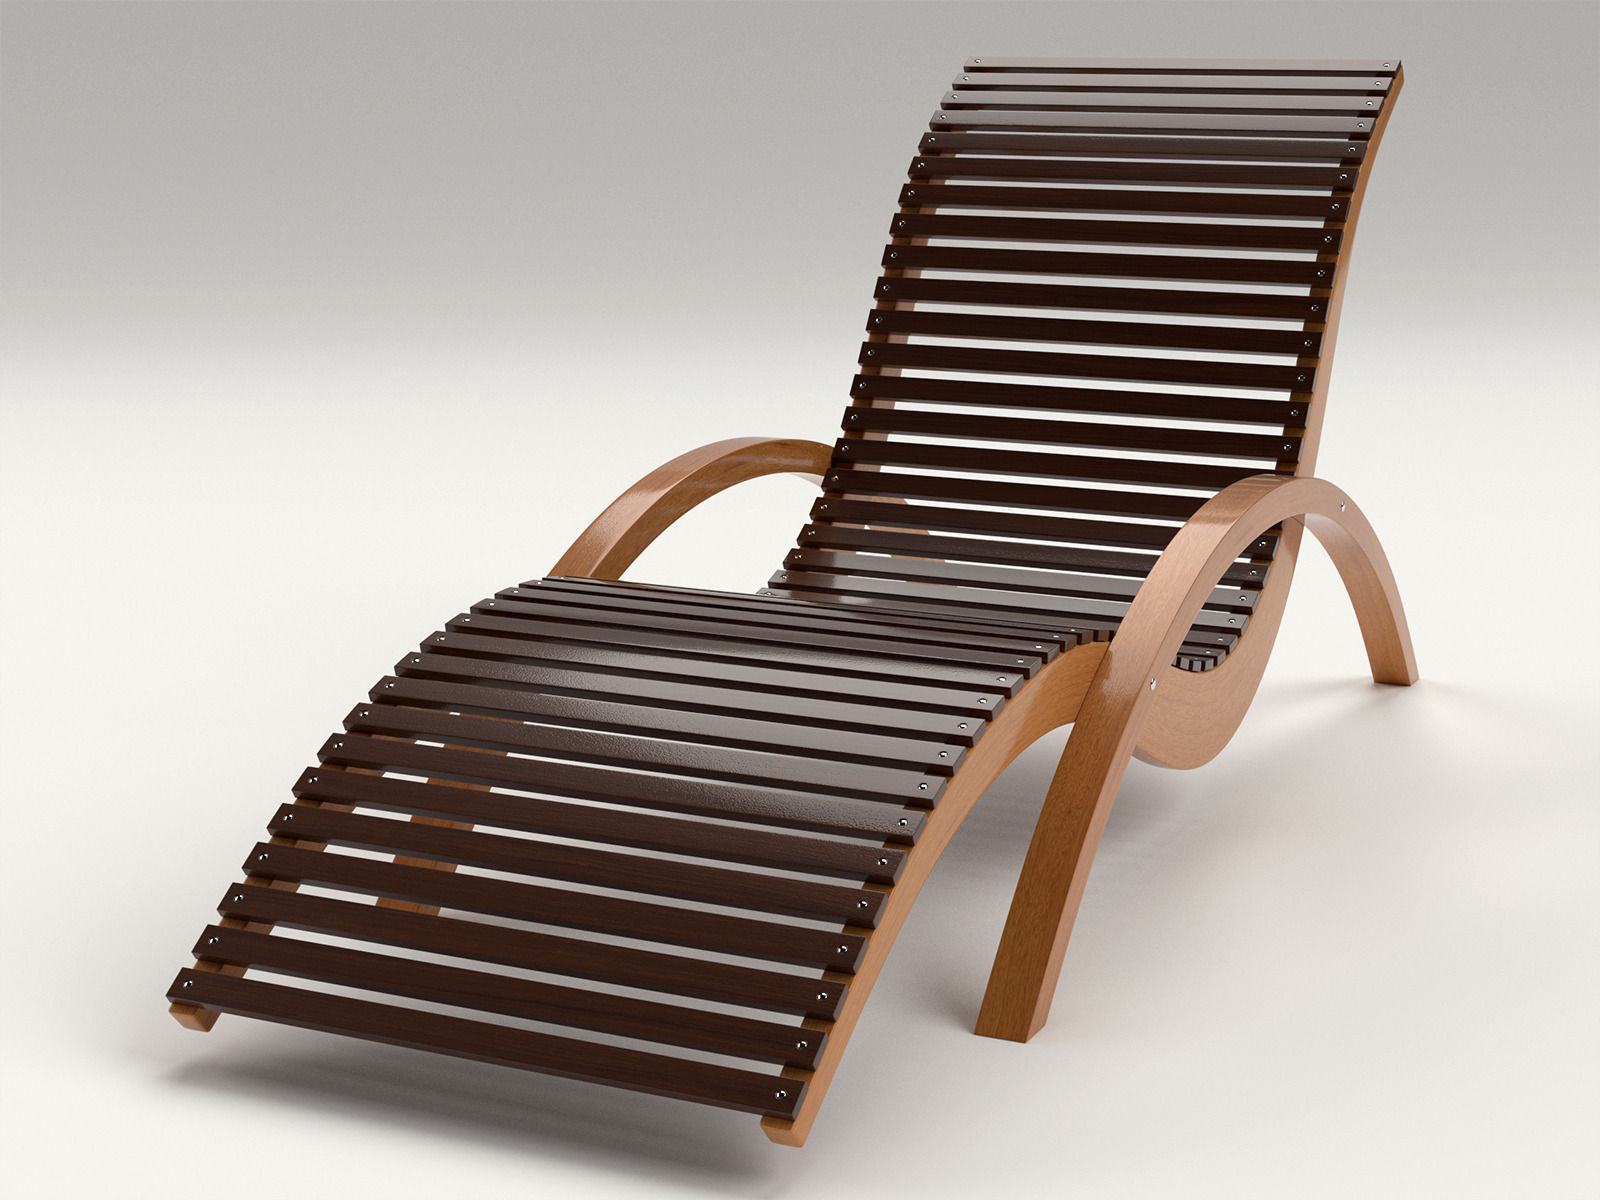 lounge chair outdoor wood patio deck 3d model obj dxf mtl 2